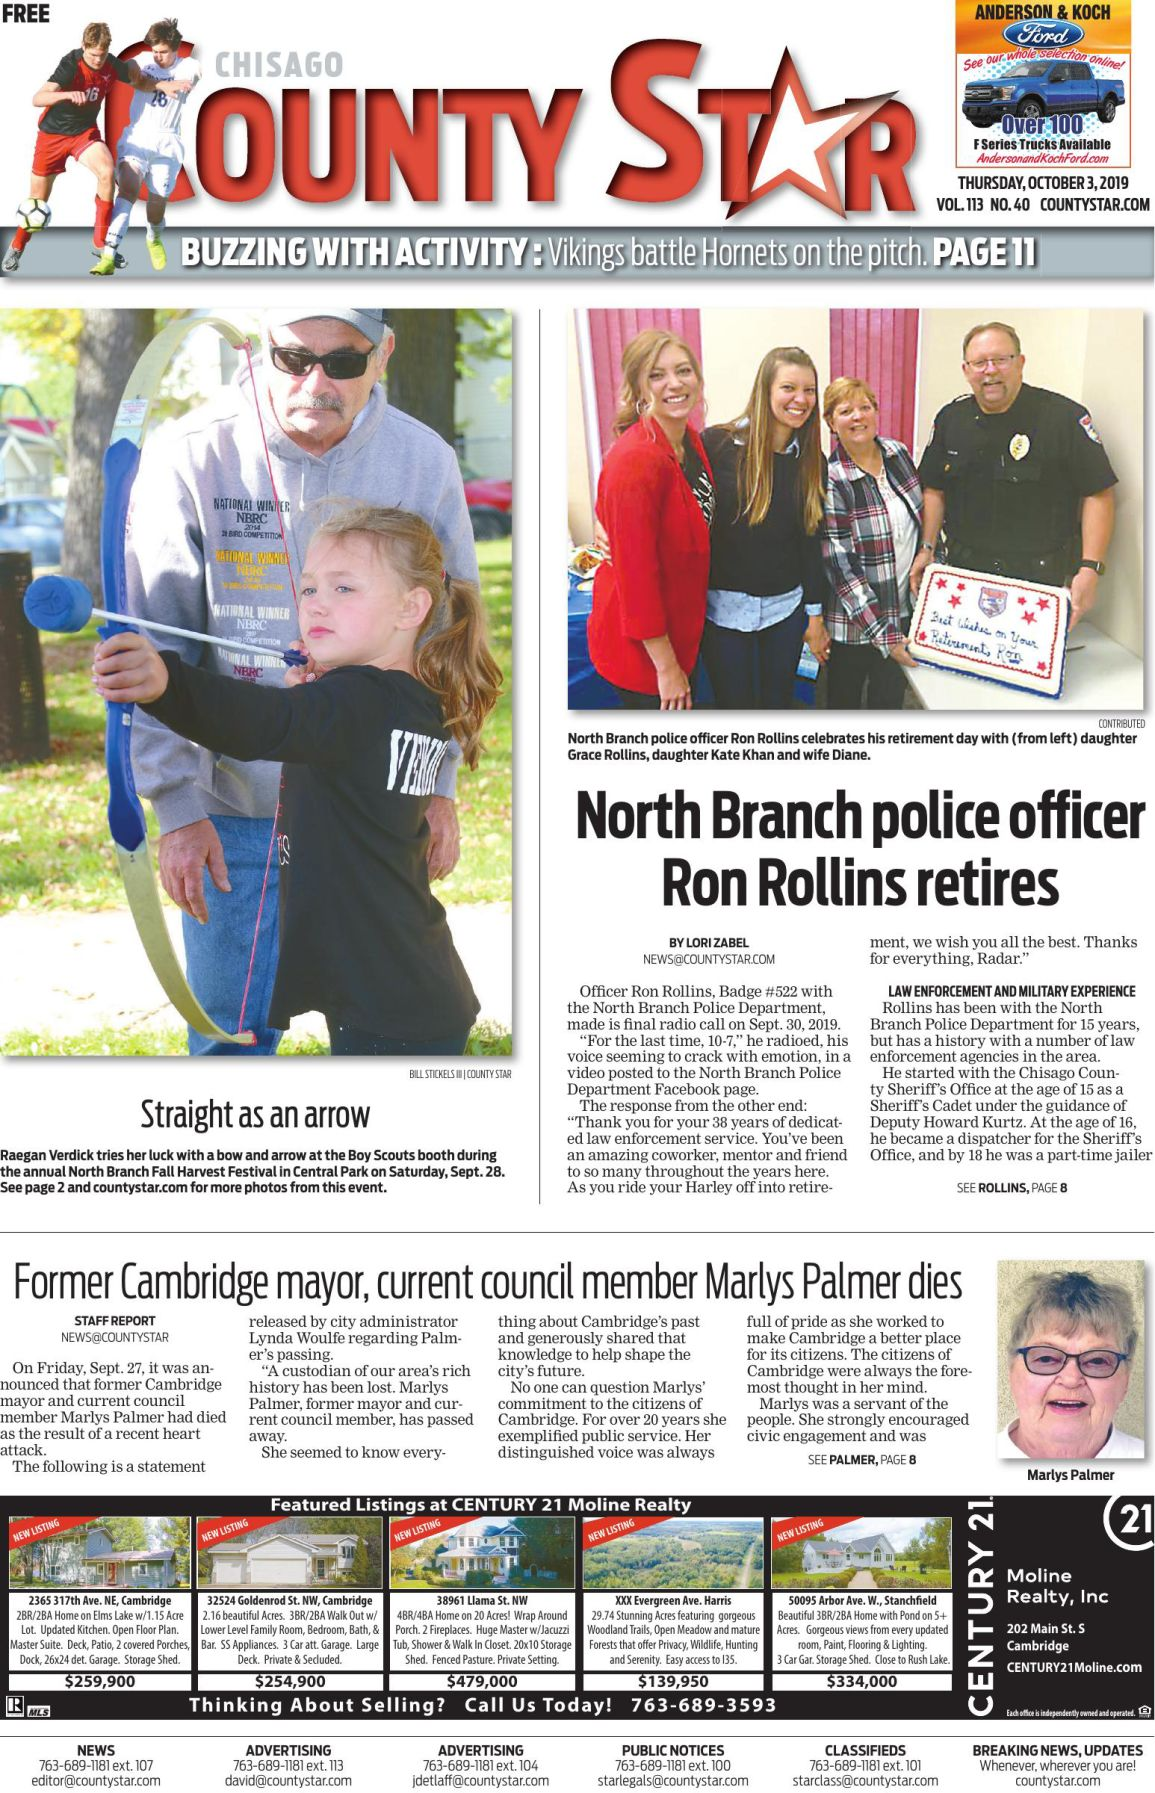 Chisago County Star October 3, 2019 e-edition